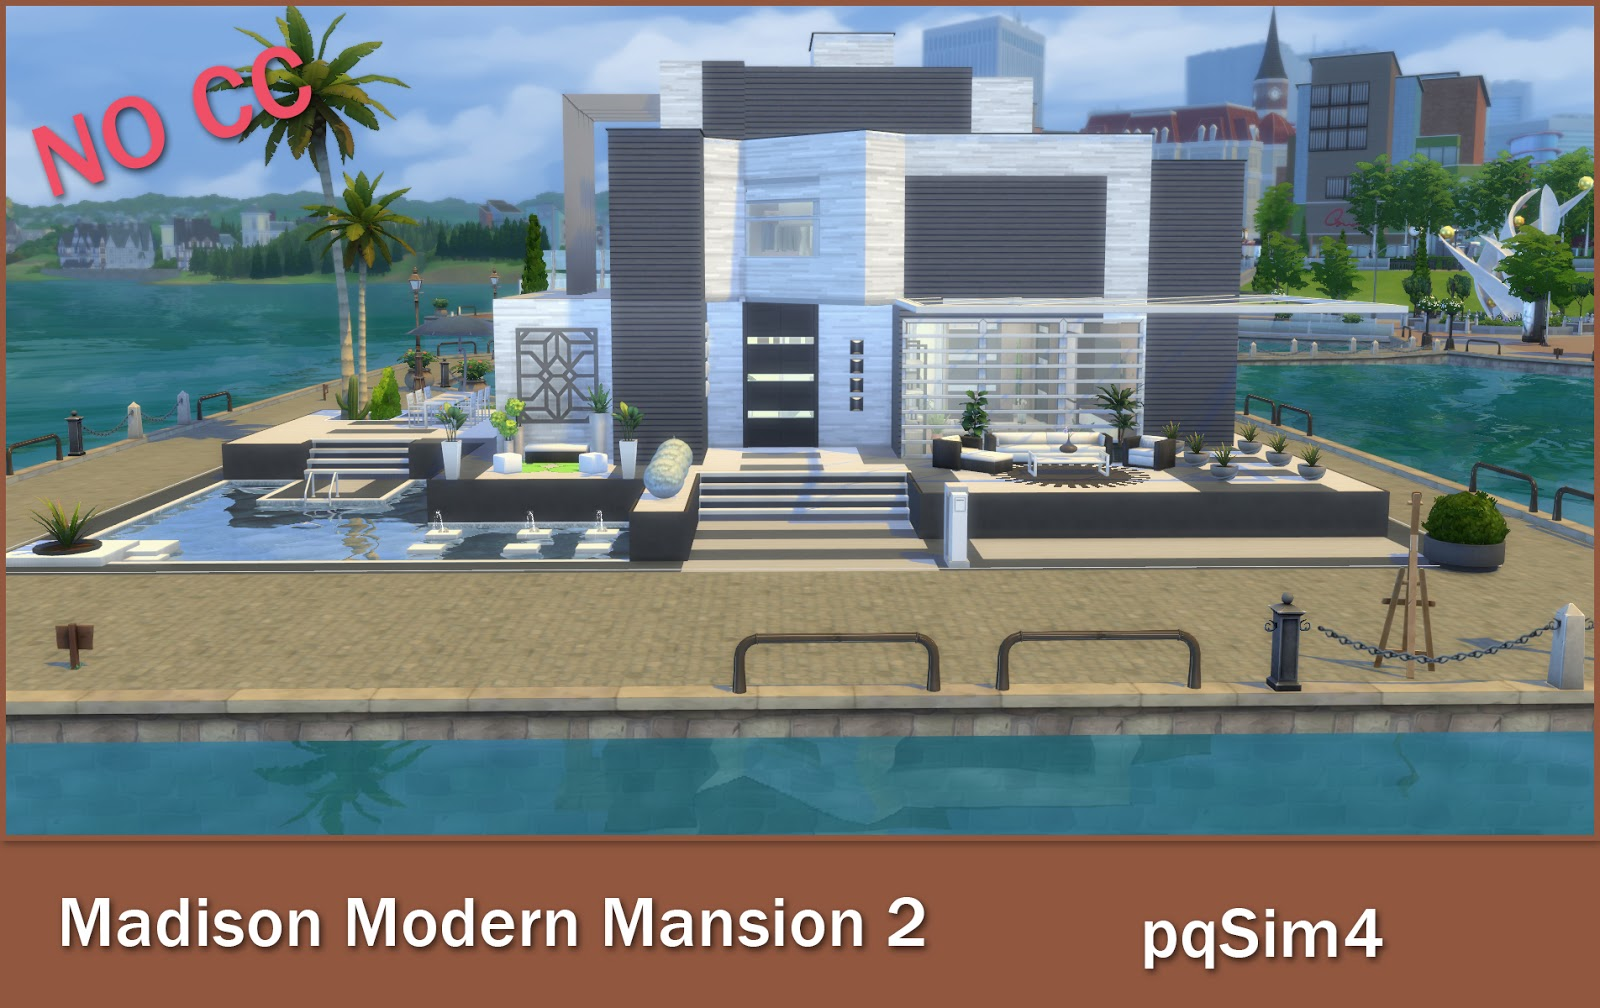 Madison modern mansion sims 4 speed build video and download for Sims 2 mansiones y jardines